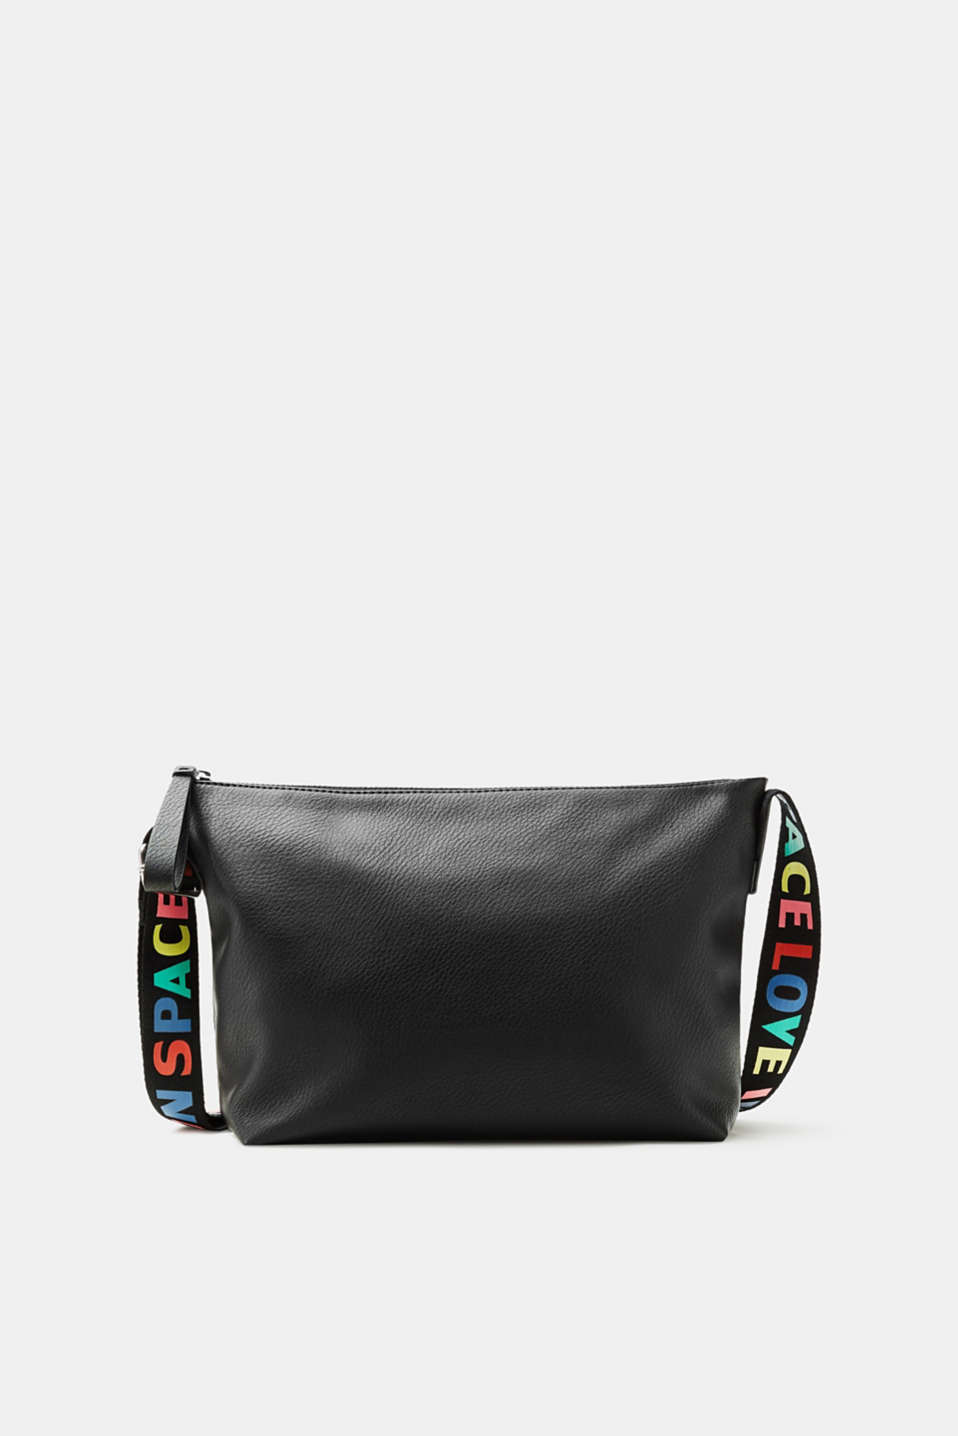 edc - Shoulder bag with a statement strap